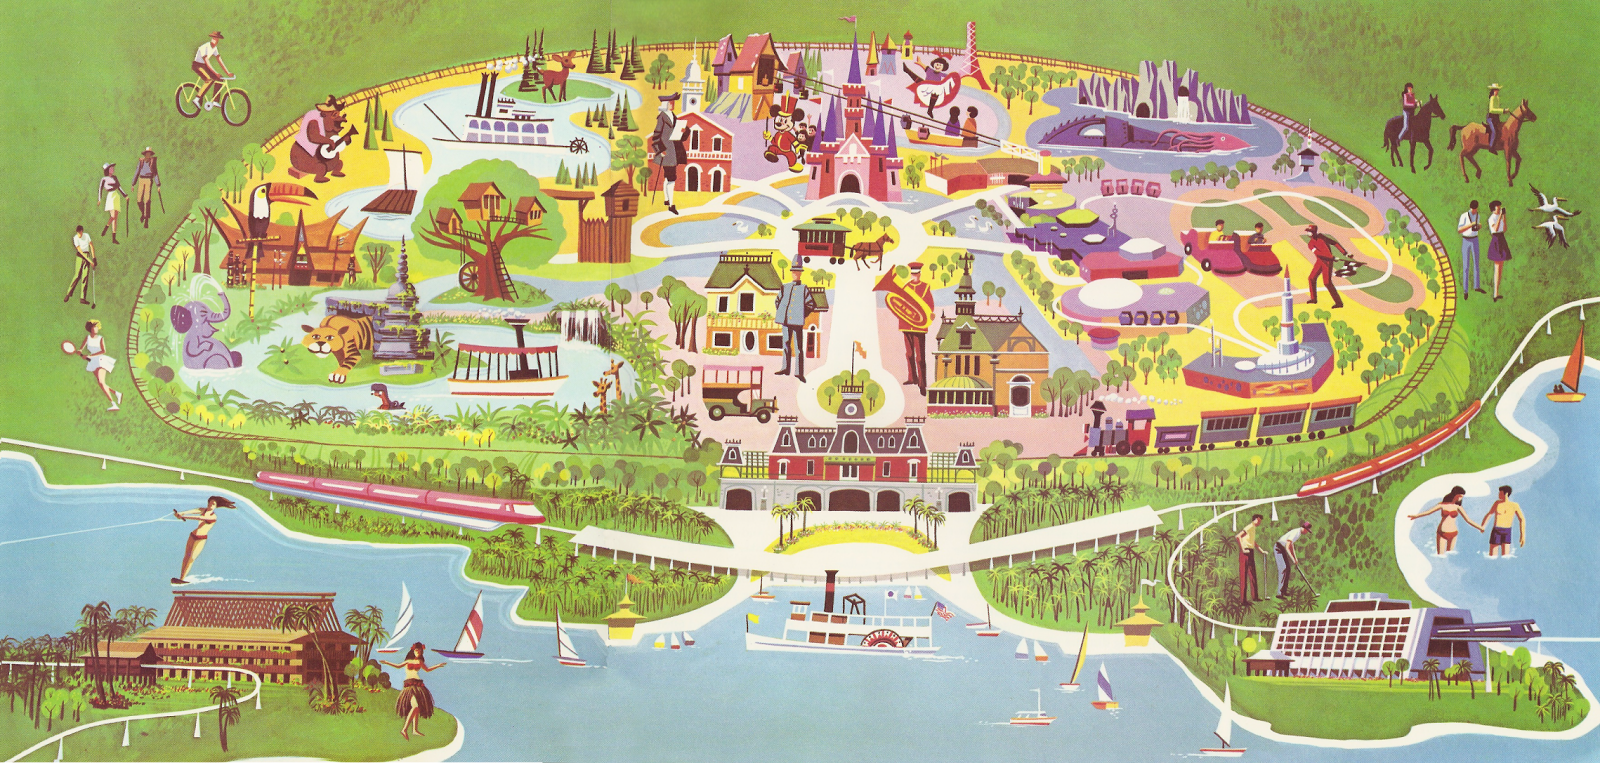 Insights And Sounds The First Walt Disney World Map